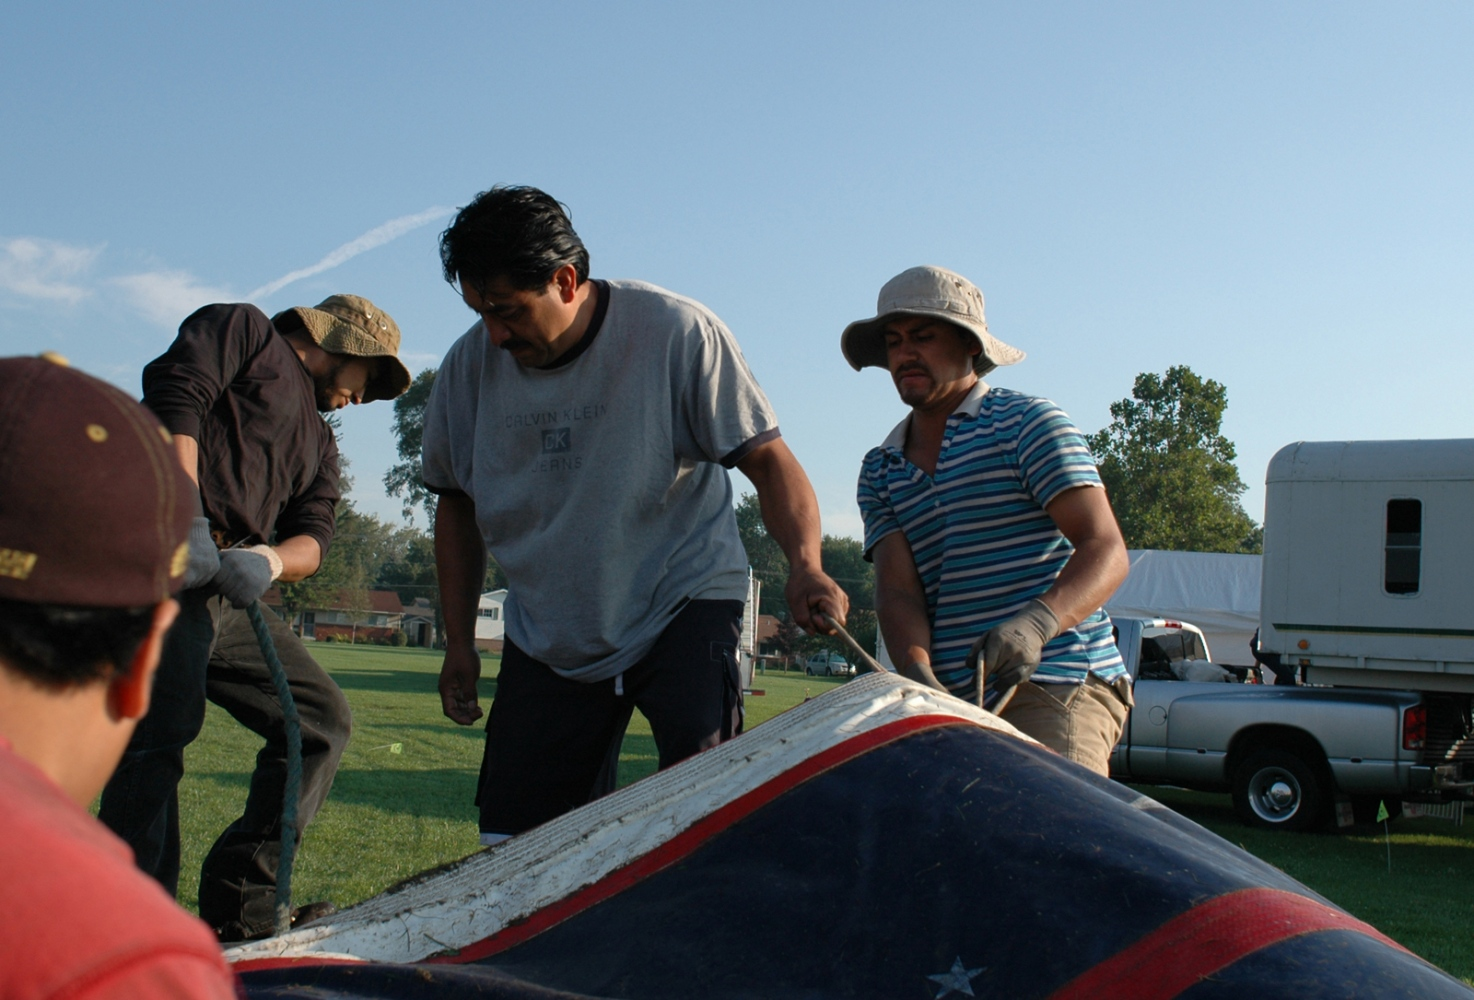 Art and Documentary Photography - Loading crew 9-4-09.jpg